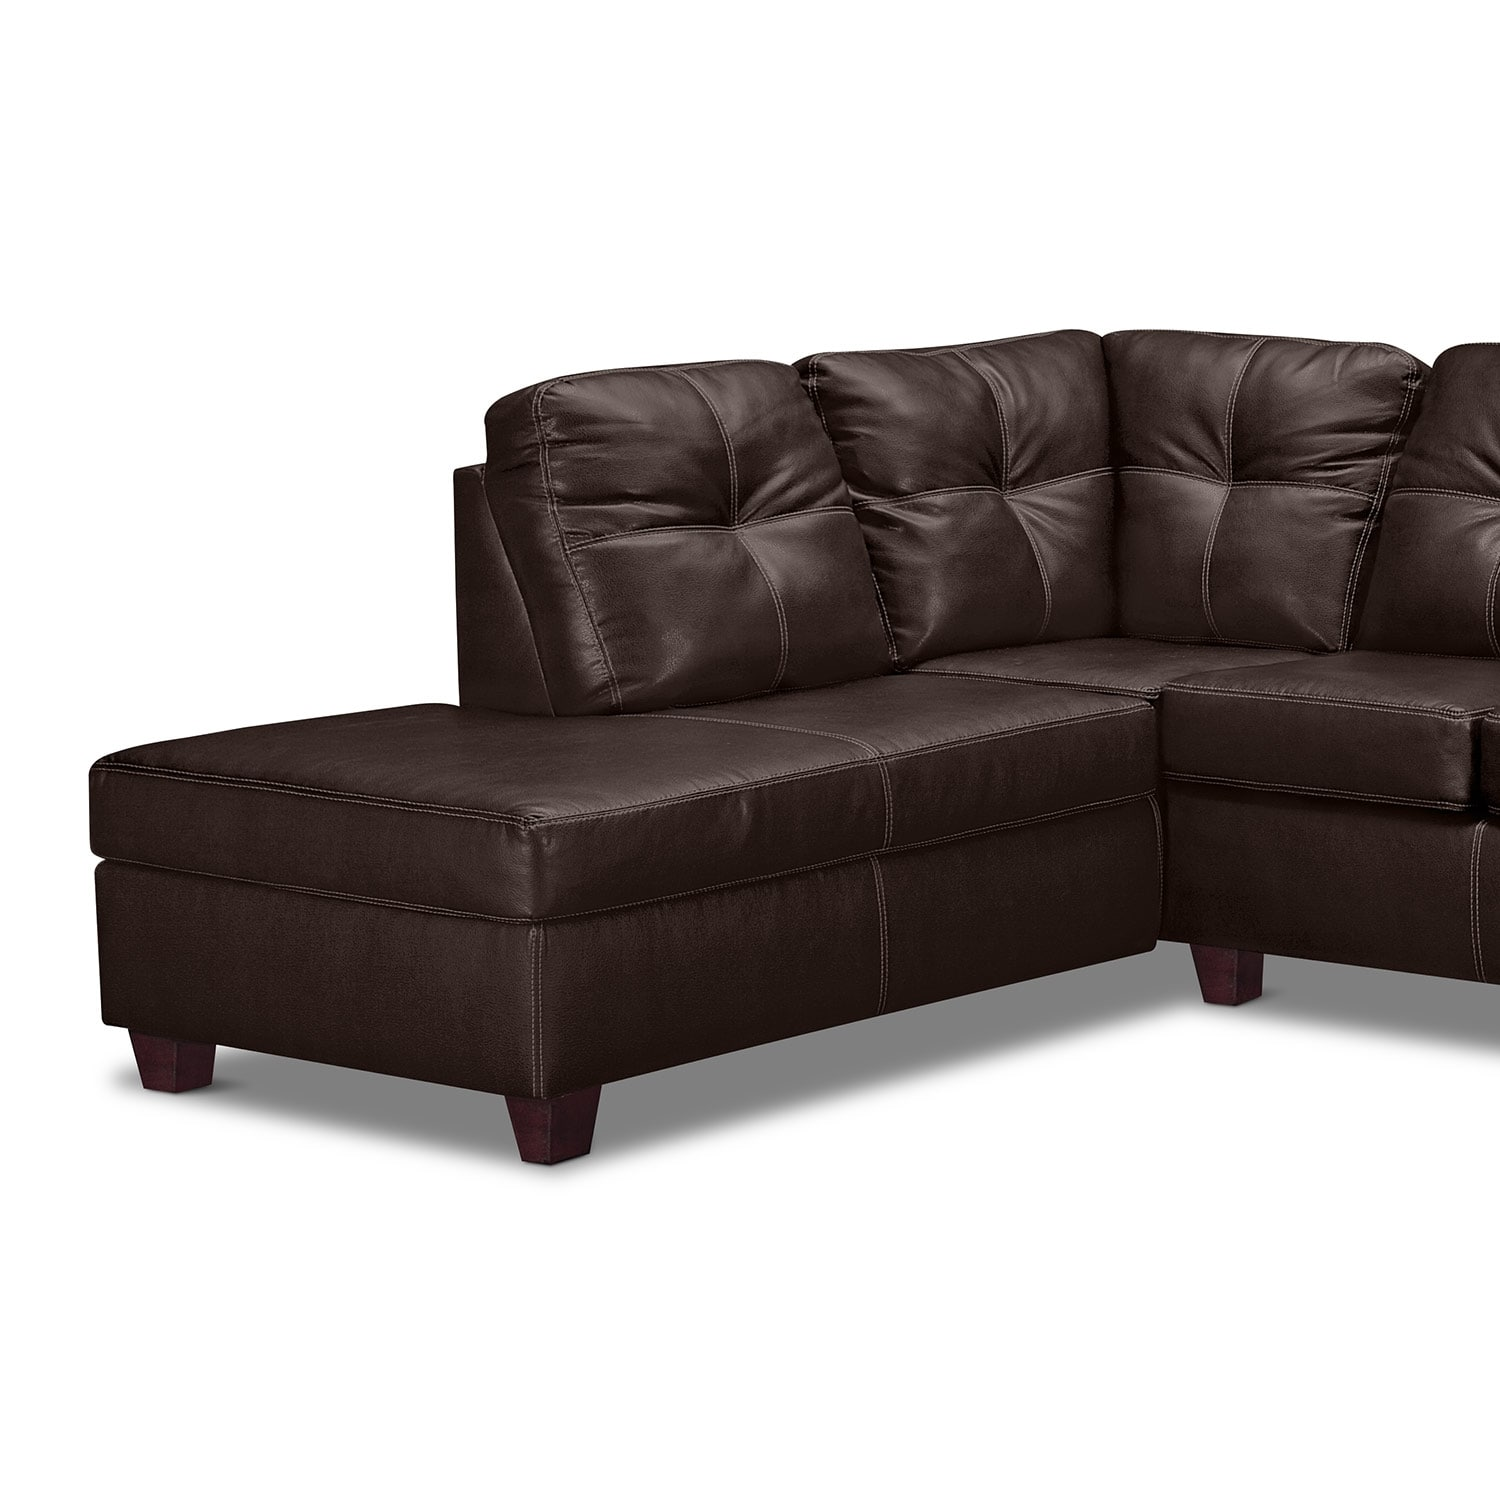 Ricardo 2 piece sectional with left facing chaise brown for Brown sectional with chaise